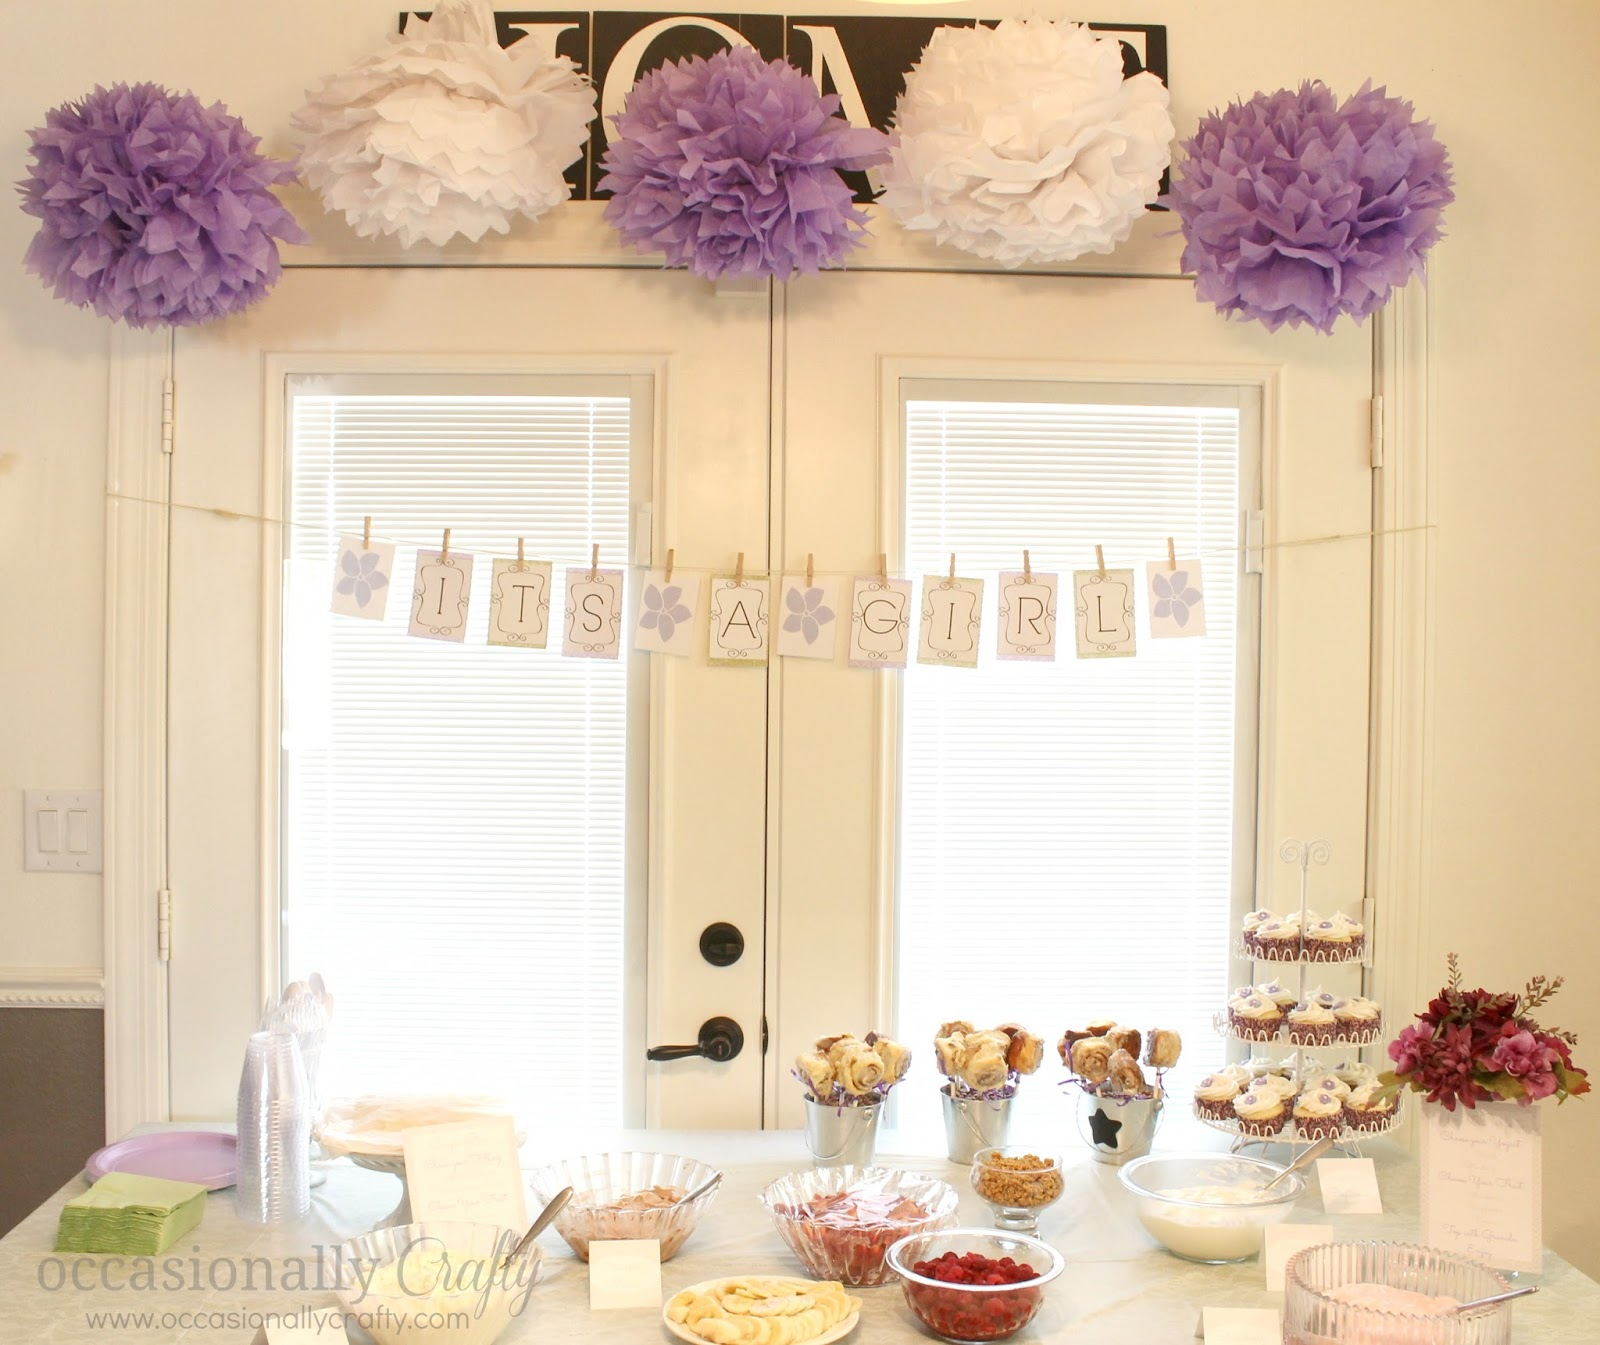 purple and green baby shower decorations. Baby Shower  Purple and Green Occasionally Crafty